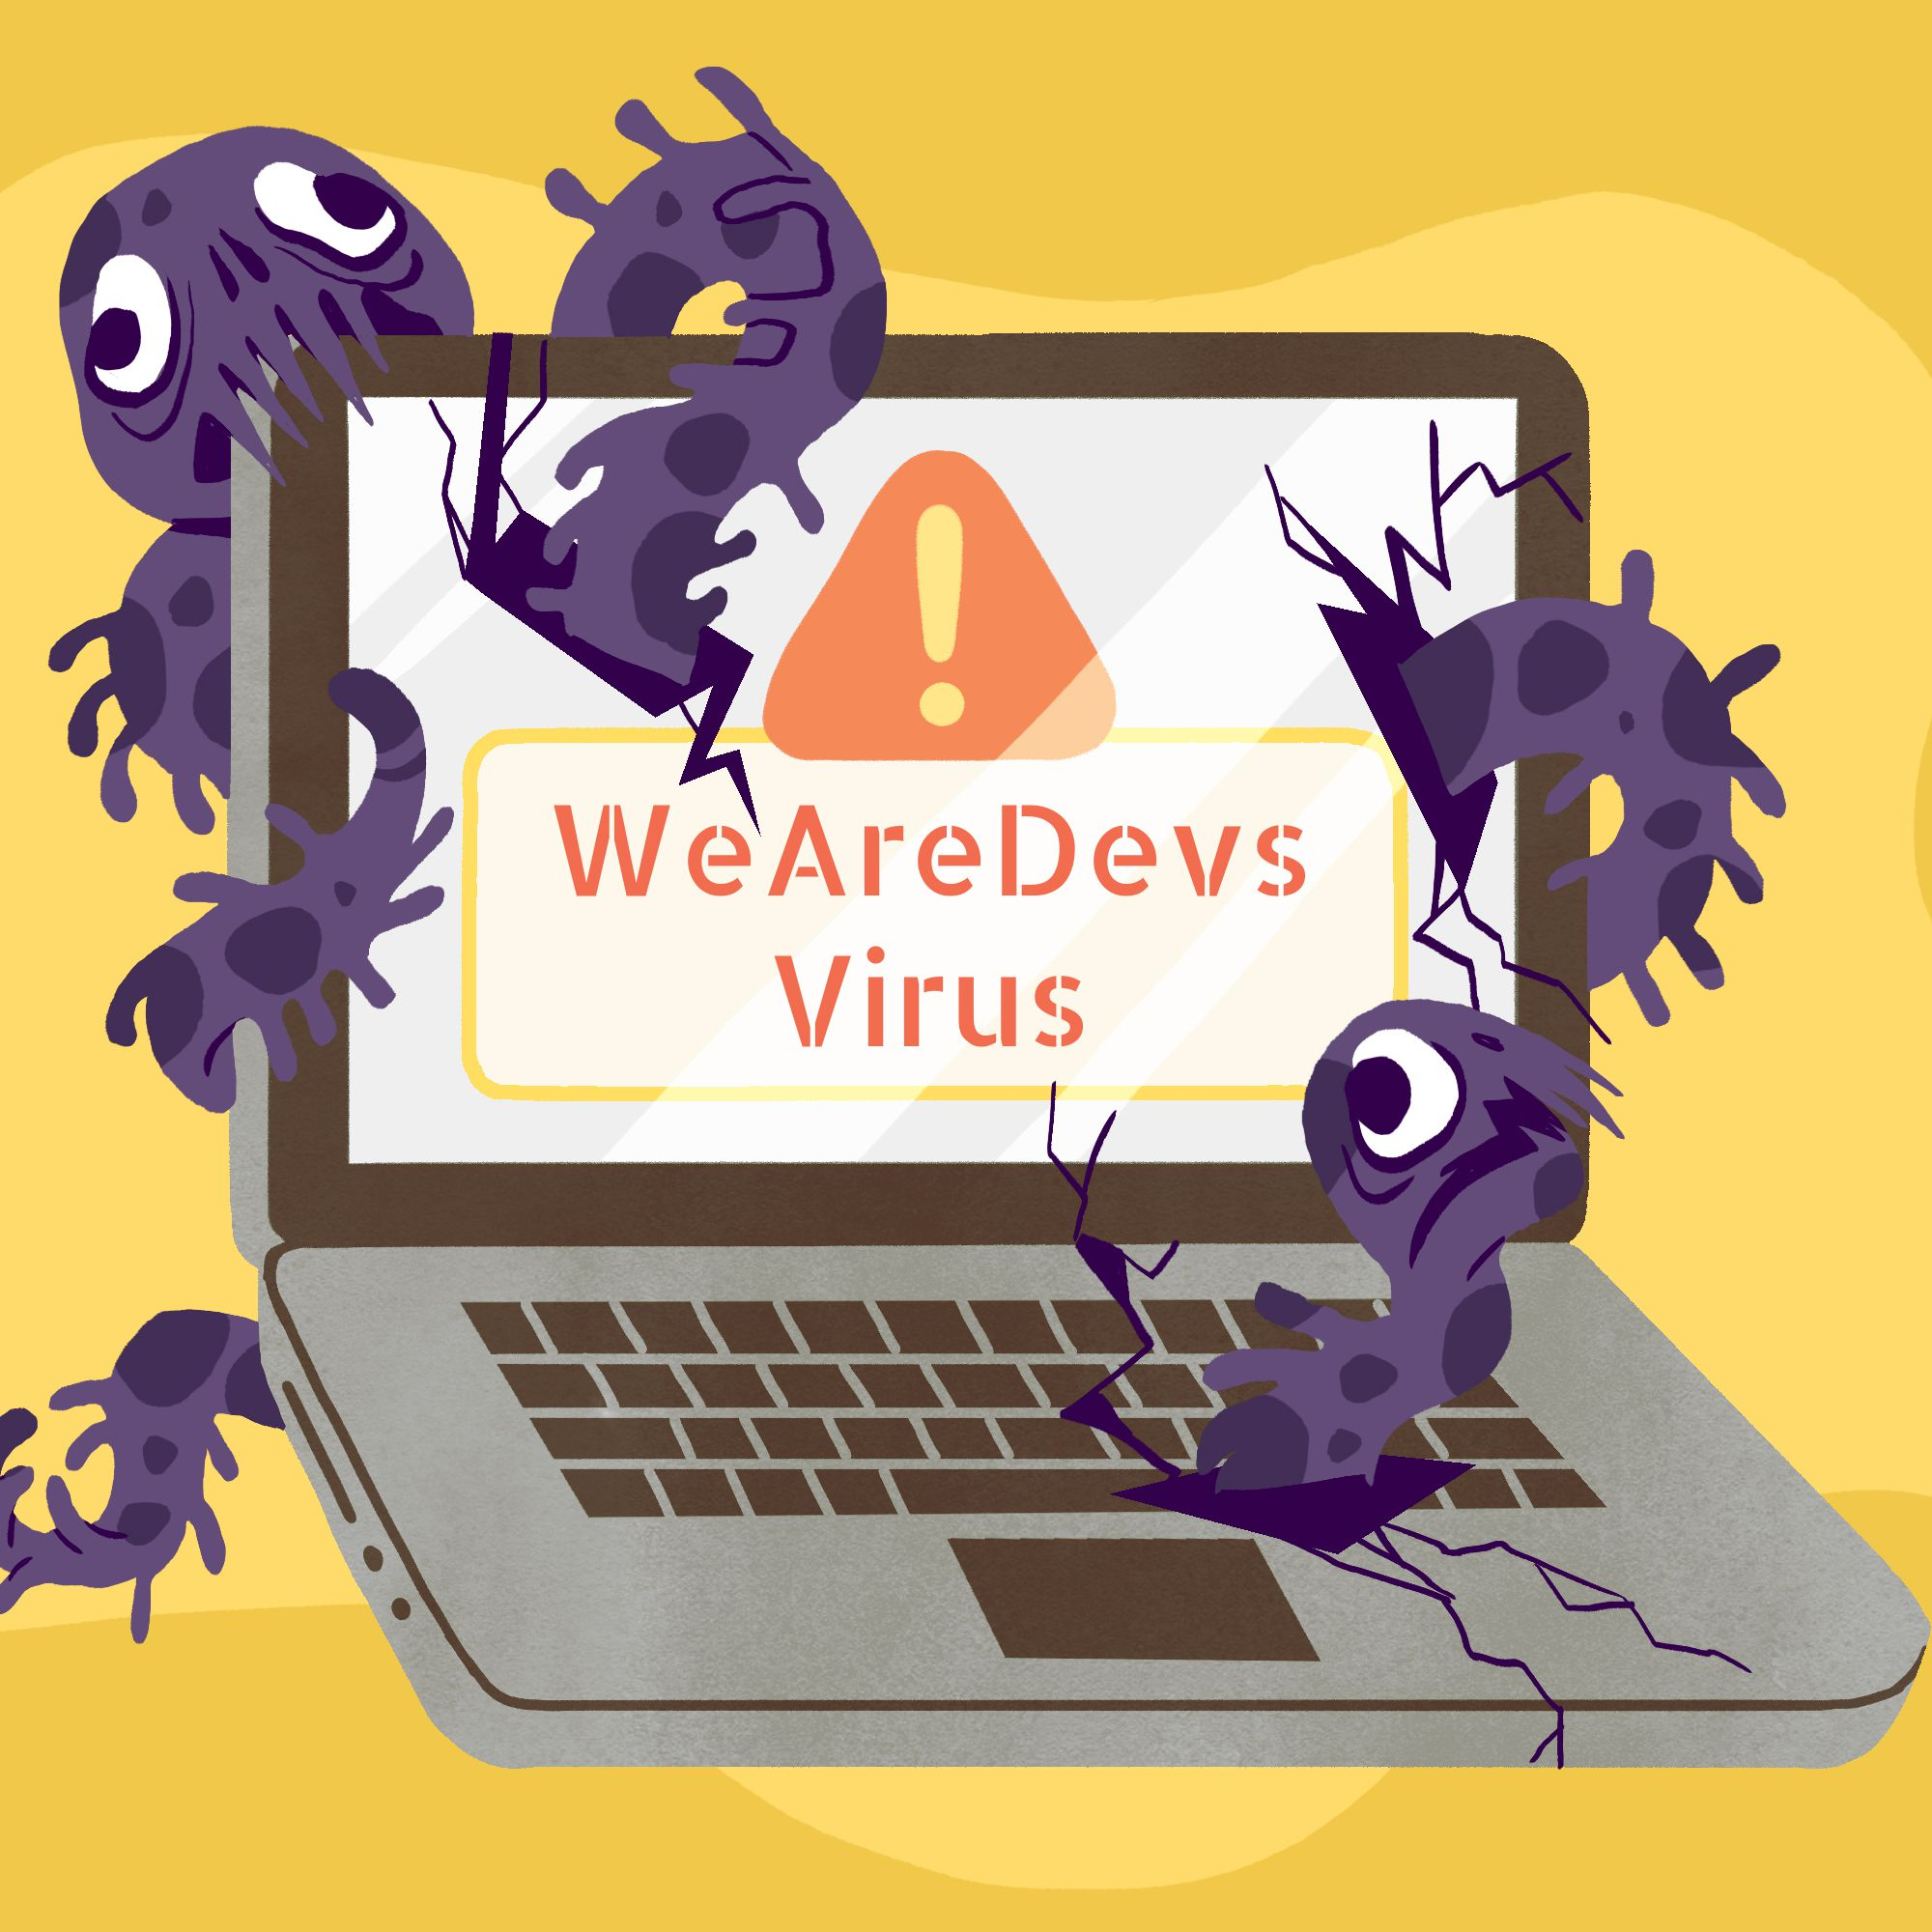 The Wearedevs Virus: What It Is and How to Remove It